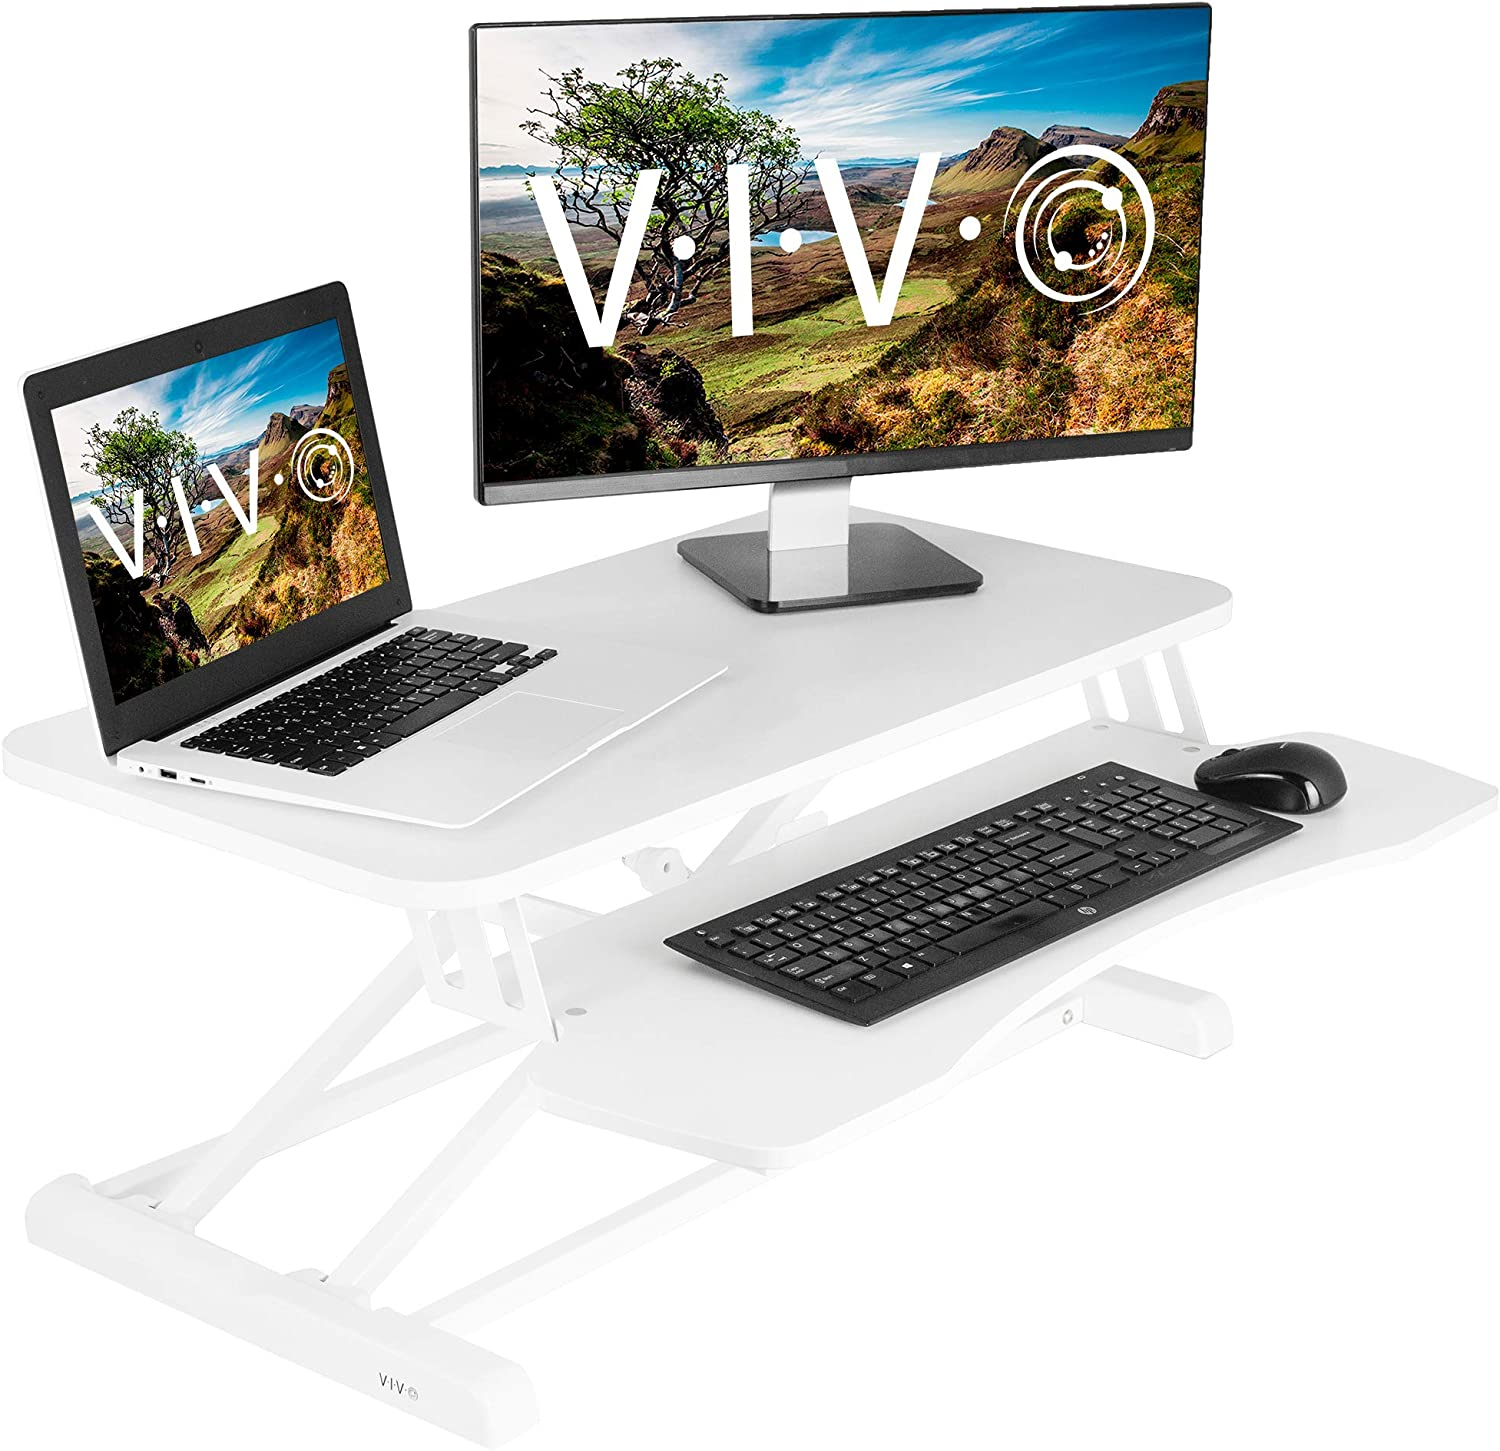 VIVO Laptop and 13 to 32 inch LCD Monitor Stand up Desk Mount Fits Laptops up to 17 inches STAND-V012C Extra Tall Adjustable Stand Renewed